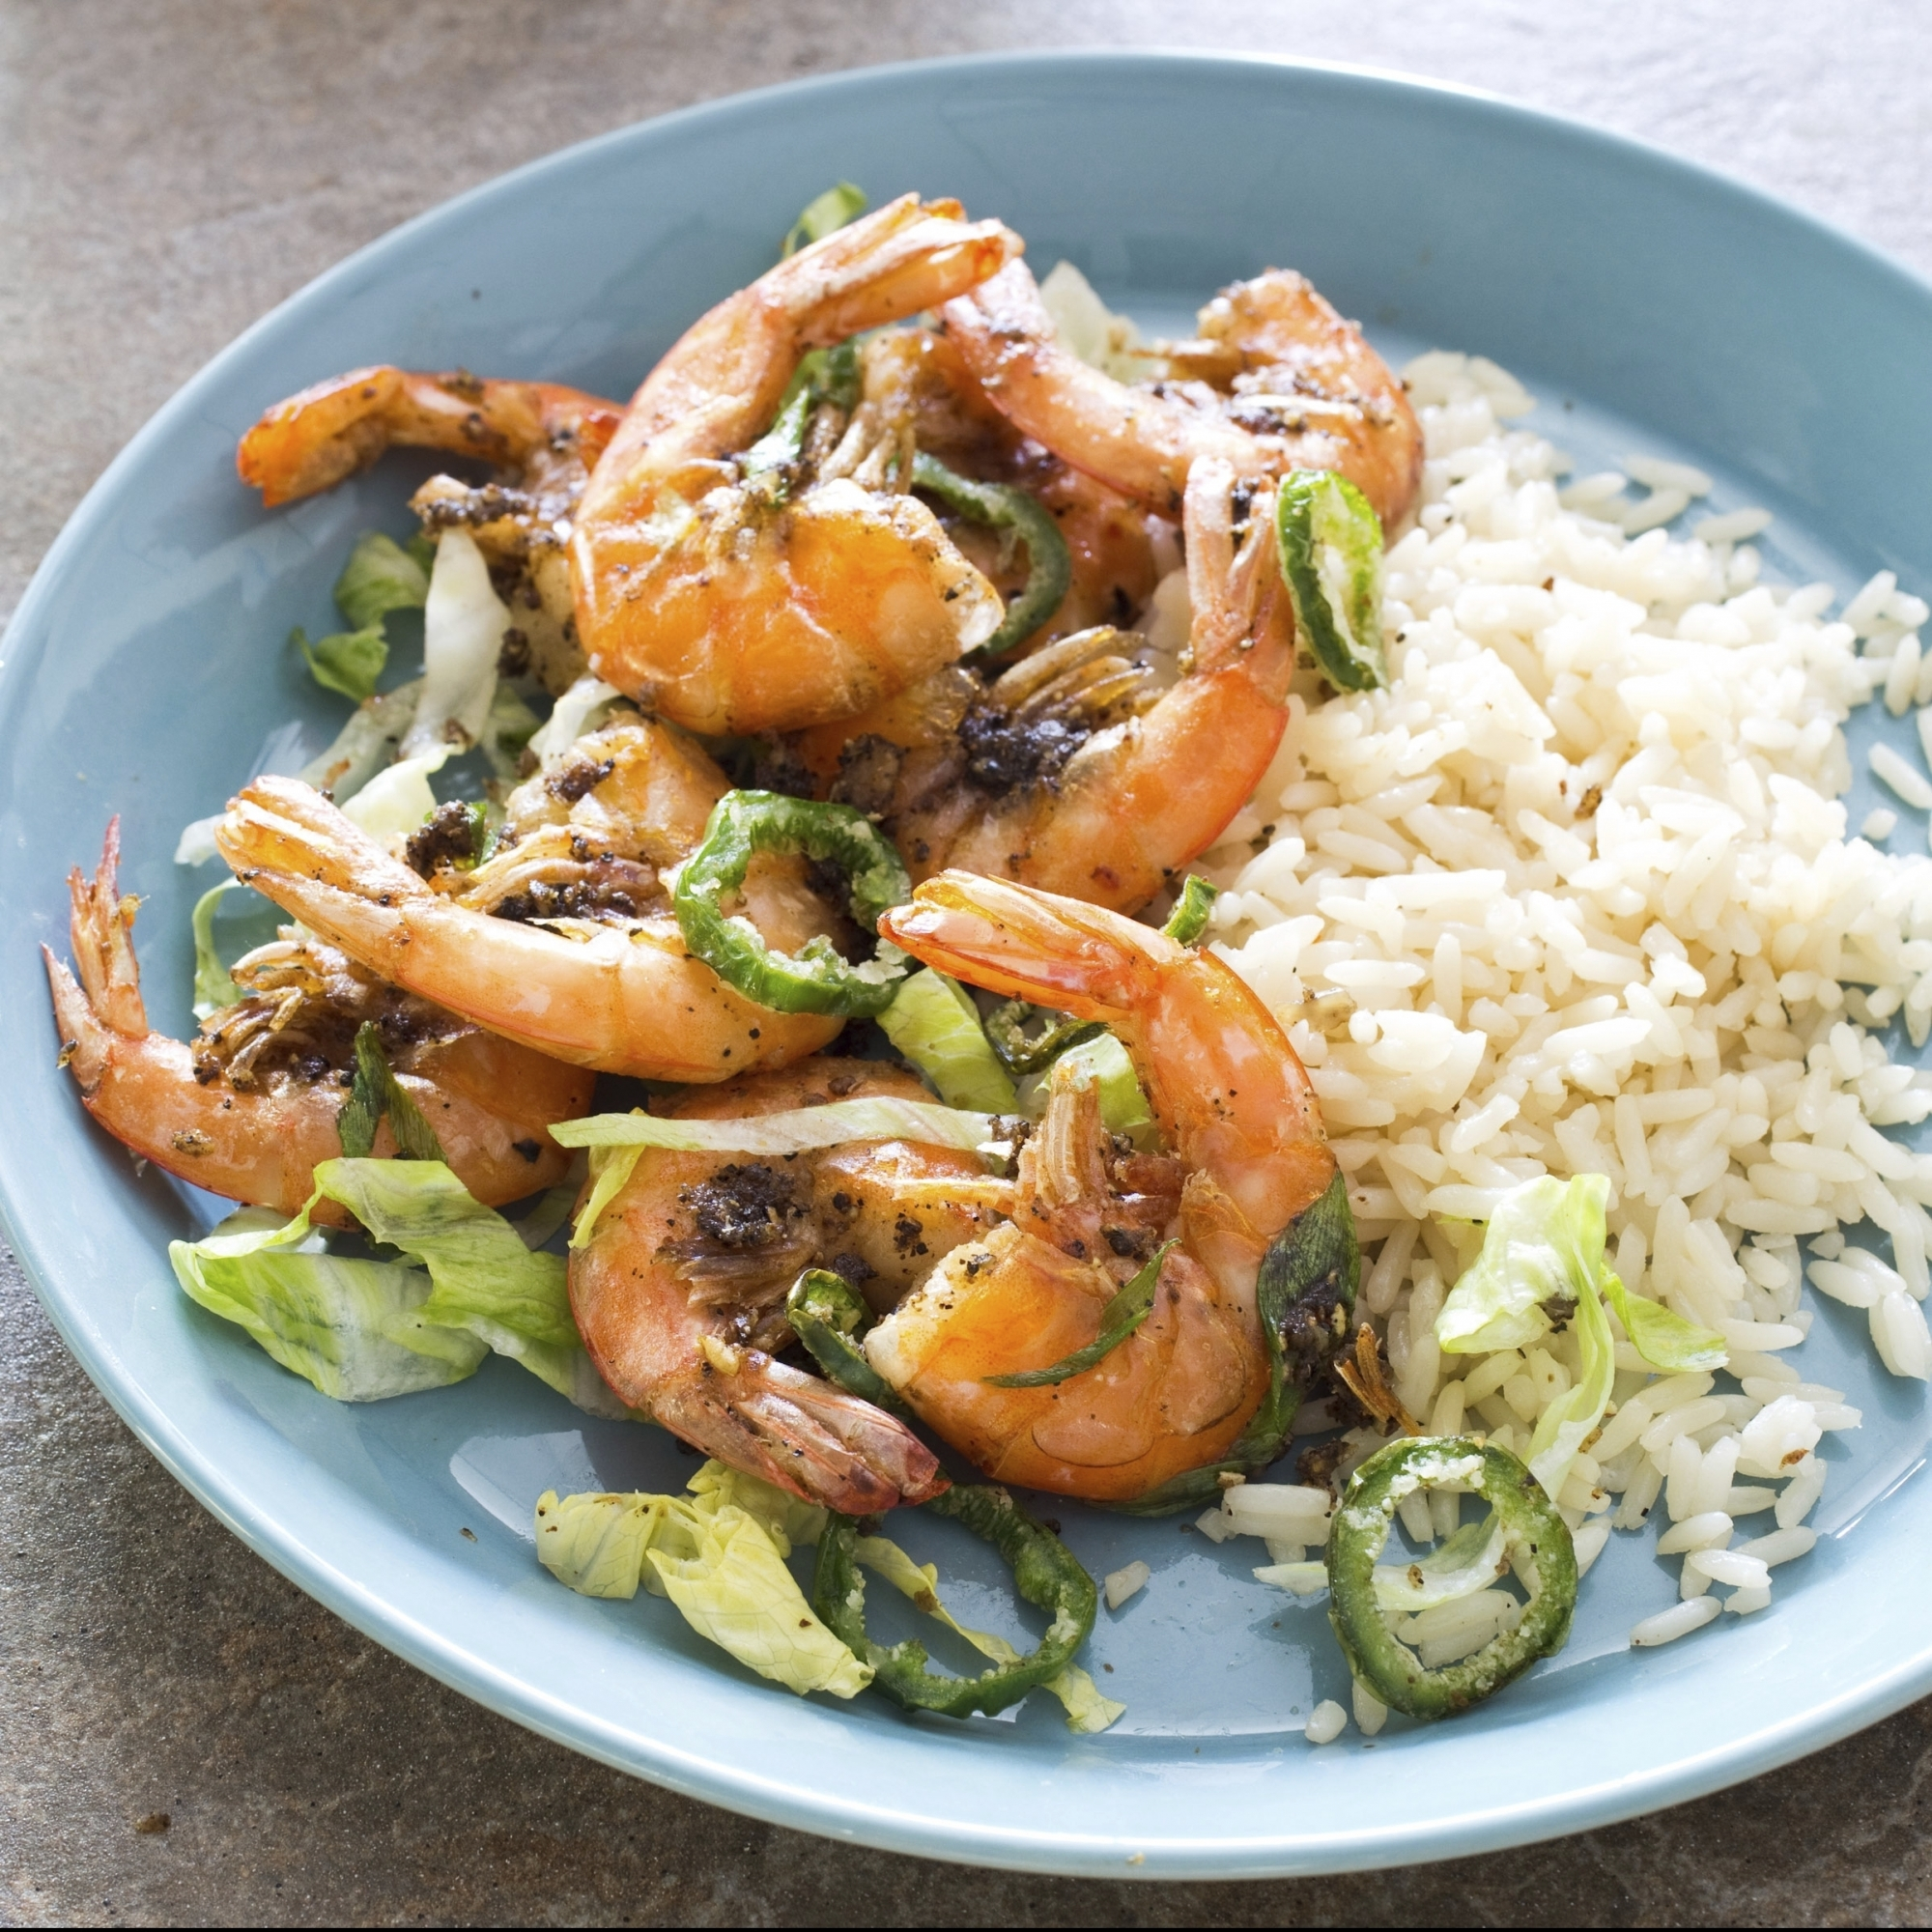 Pepper Finance Reviews This Chinese Salt And Pepper Shrimp Is A Savory Spicy Joy Wtop